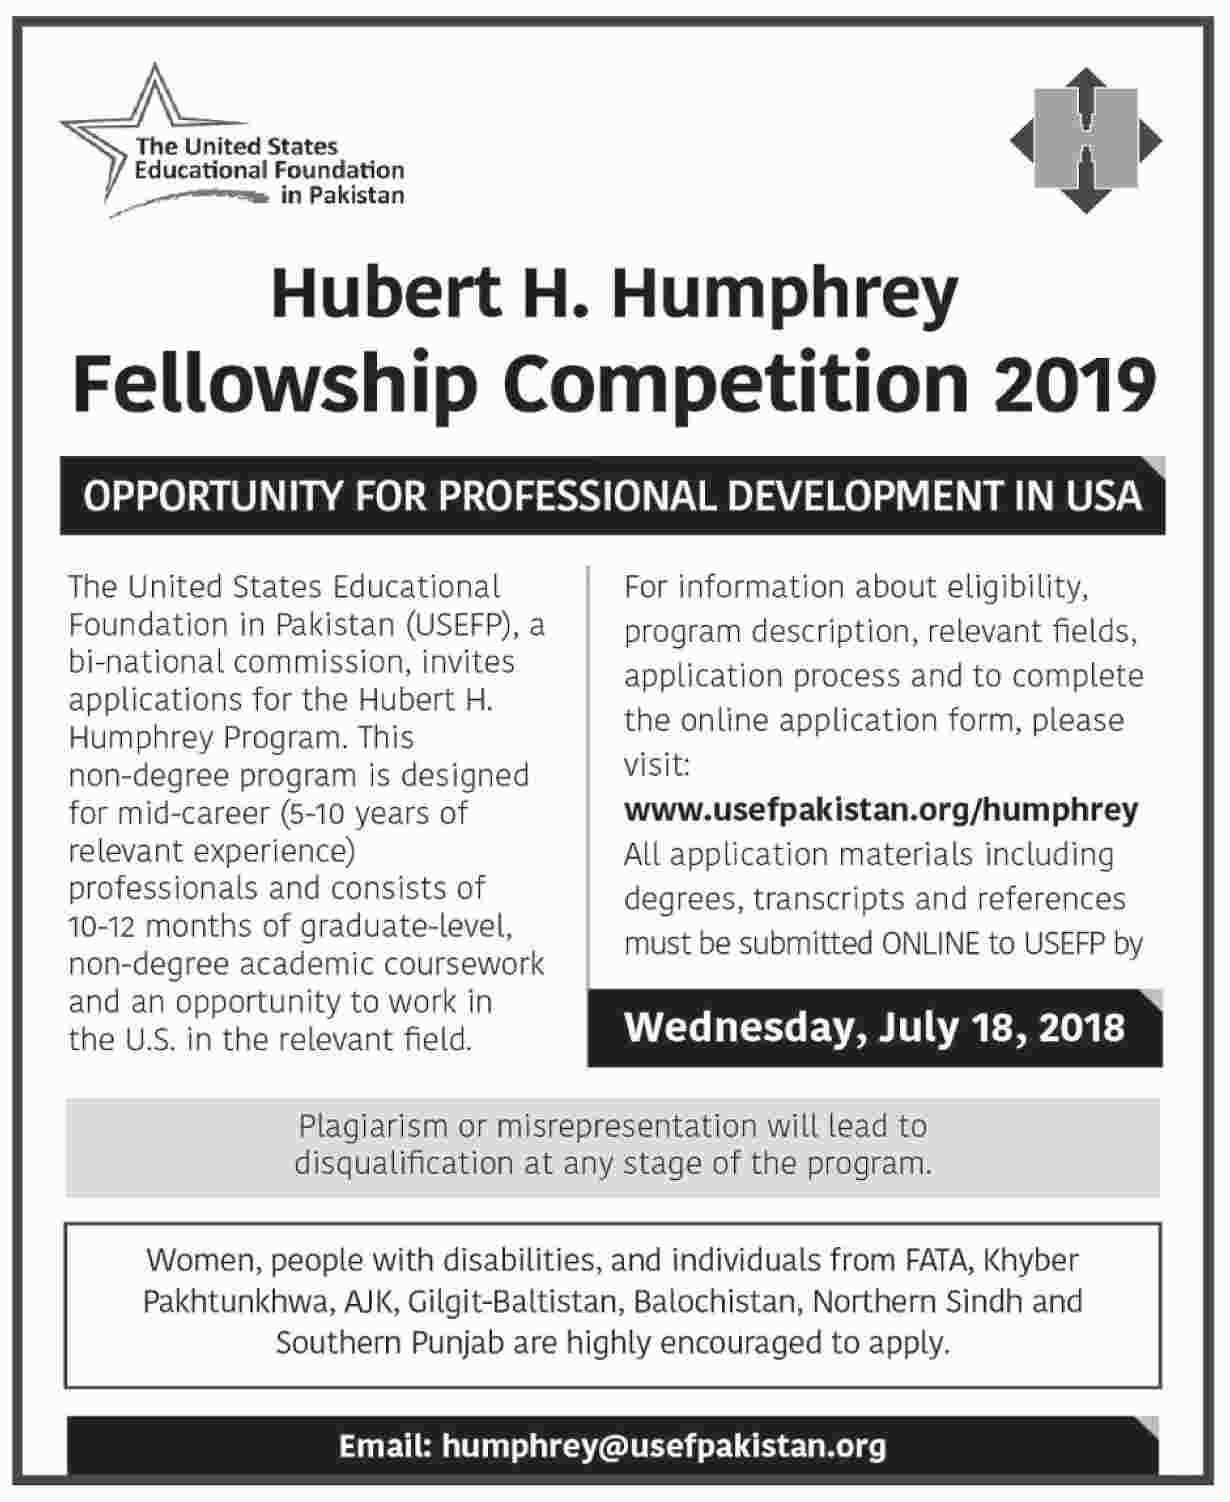 Hubert H. Humphrey Fellowship Competition 2019